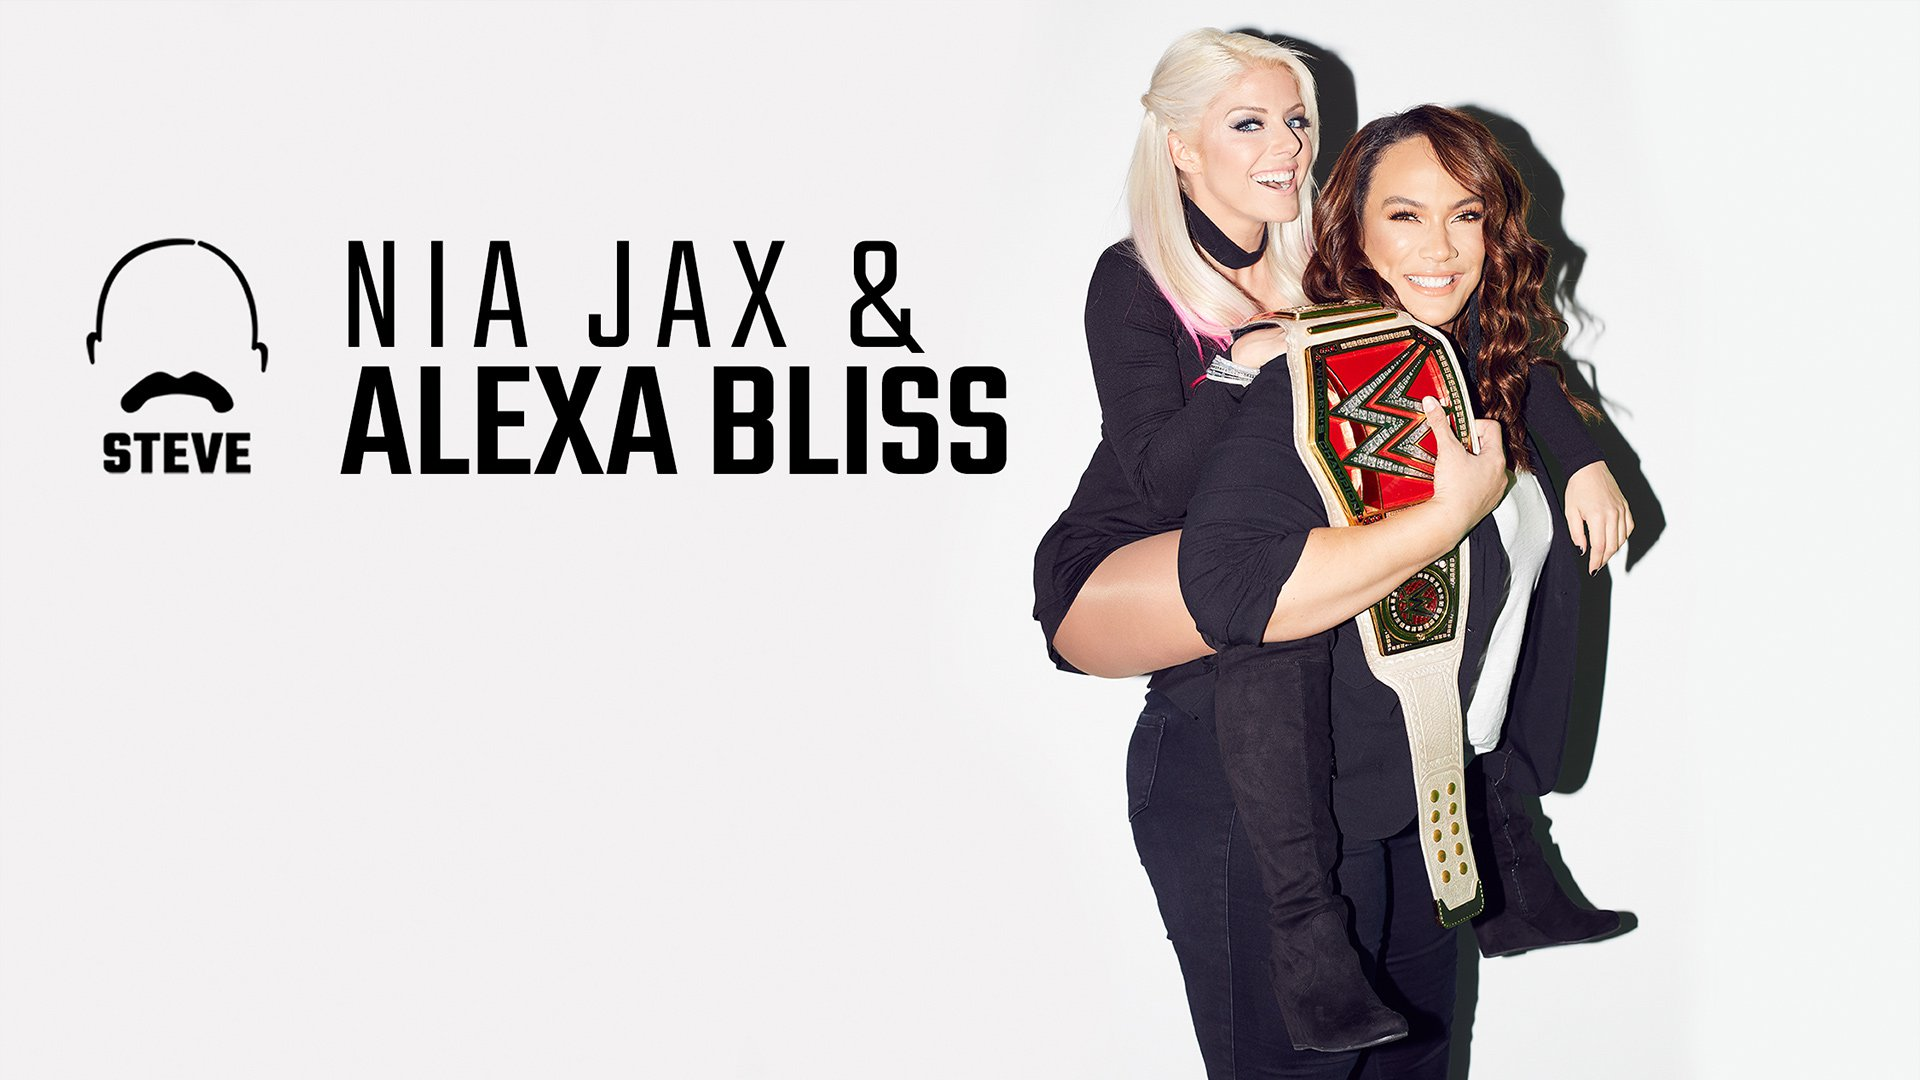 Nia Jax and Alexa Bliss chat with Steve Harvey: photos